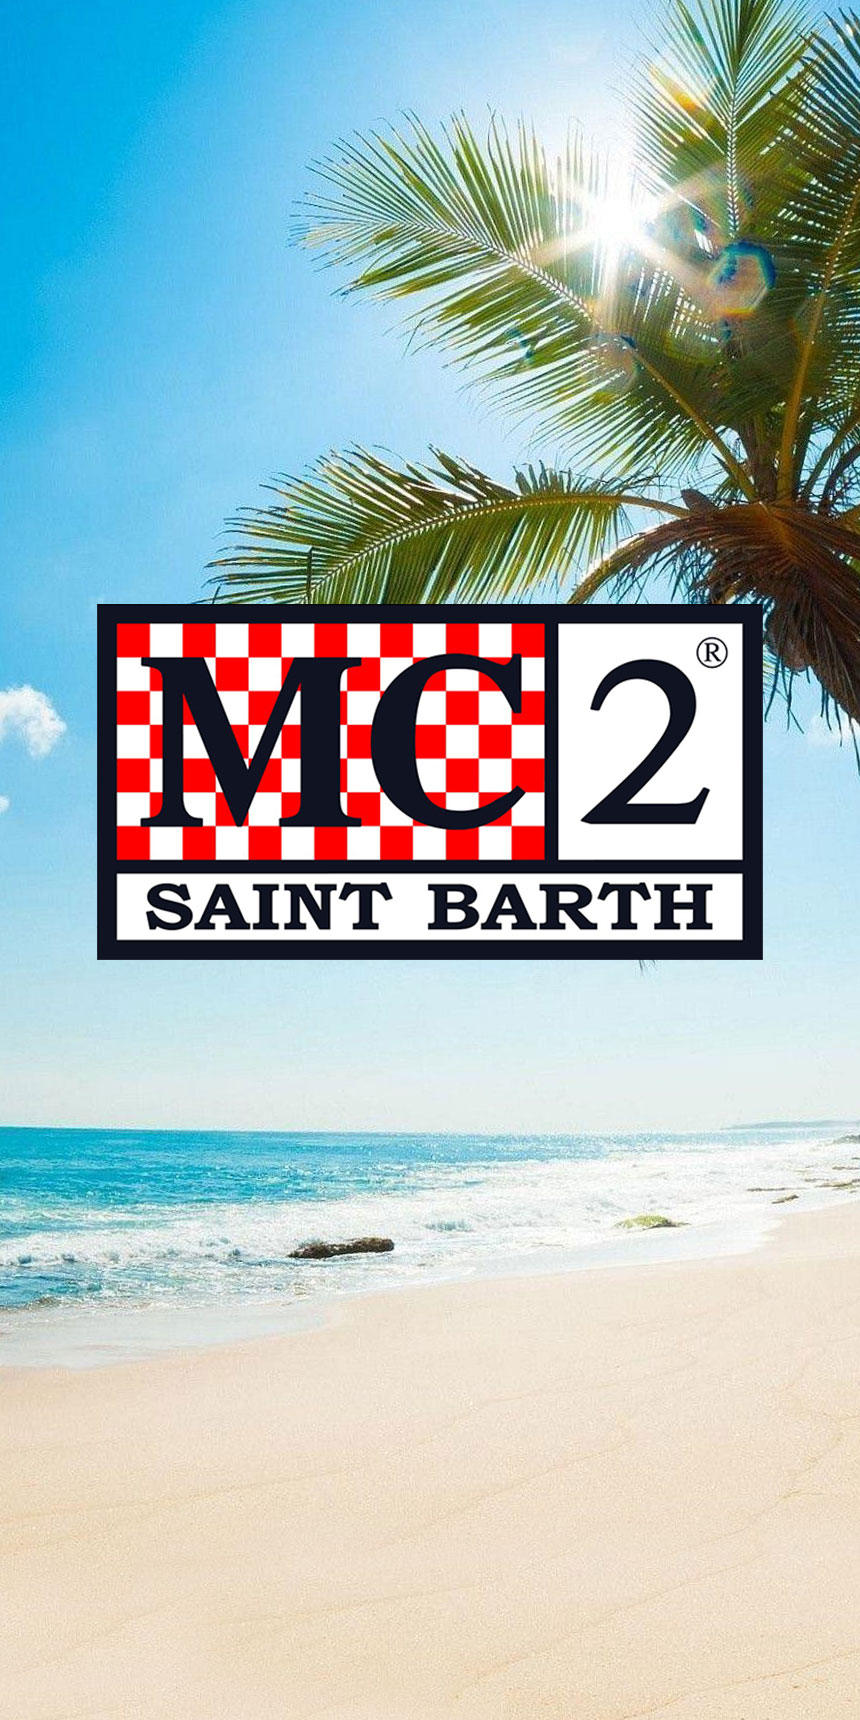 Make A Splash with MC2 Saint Barth